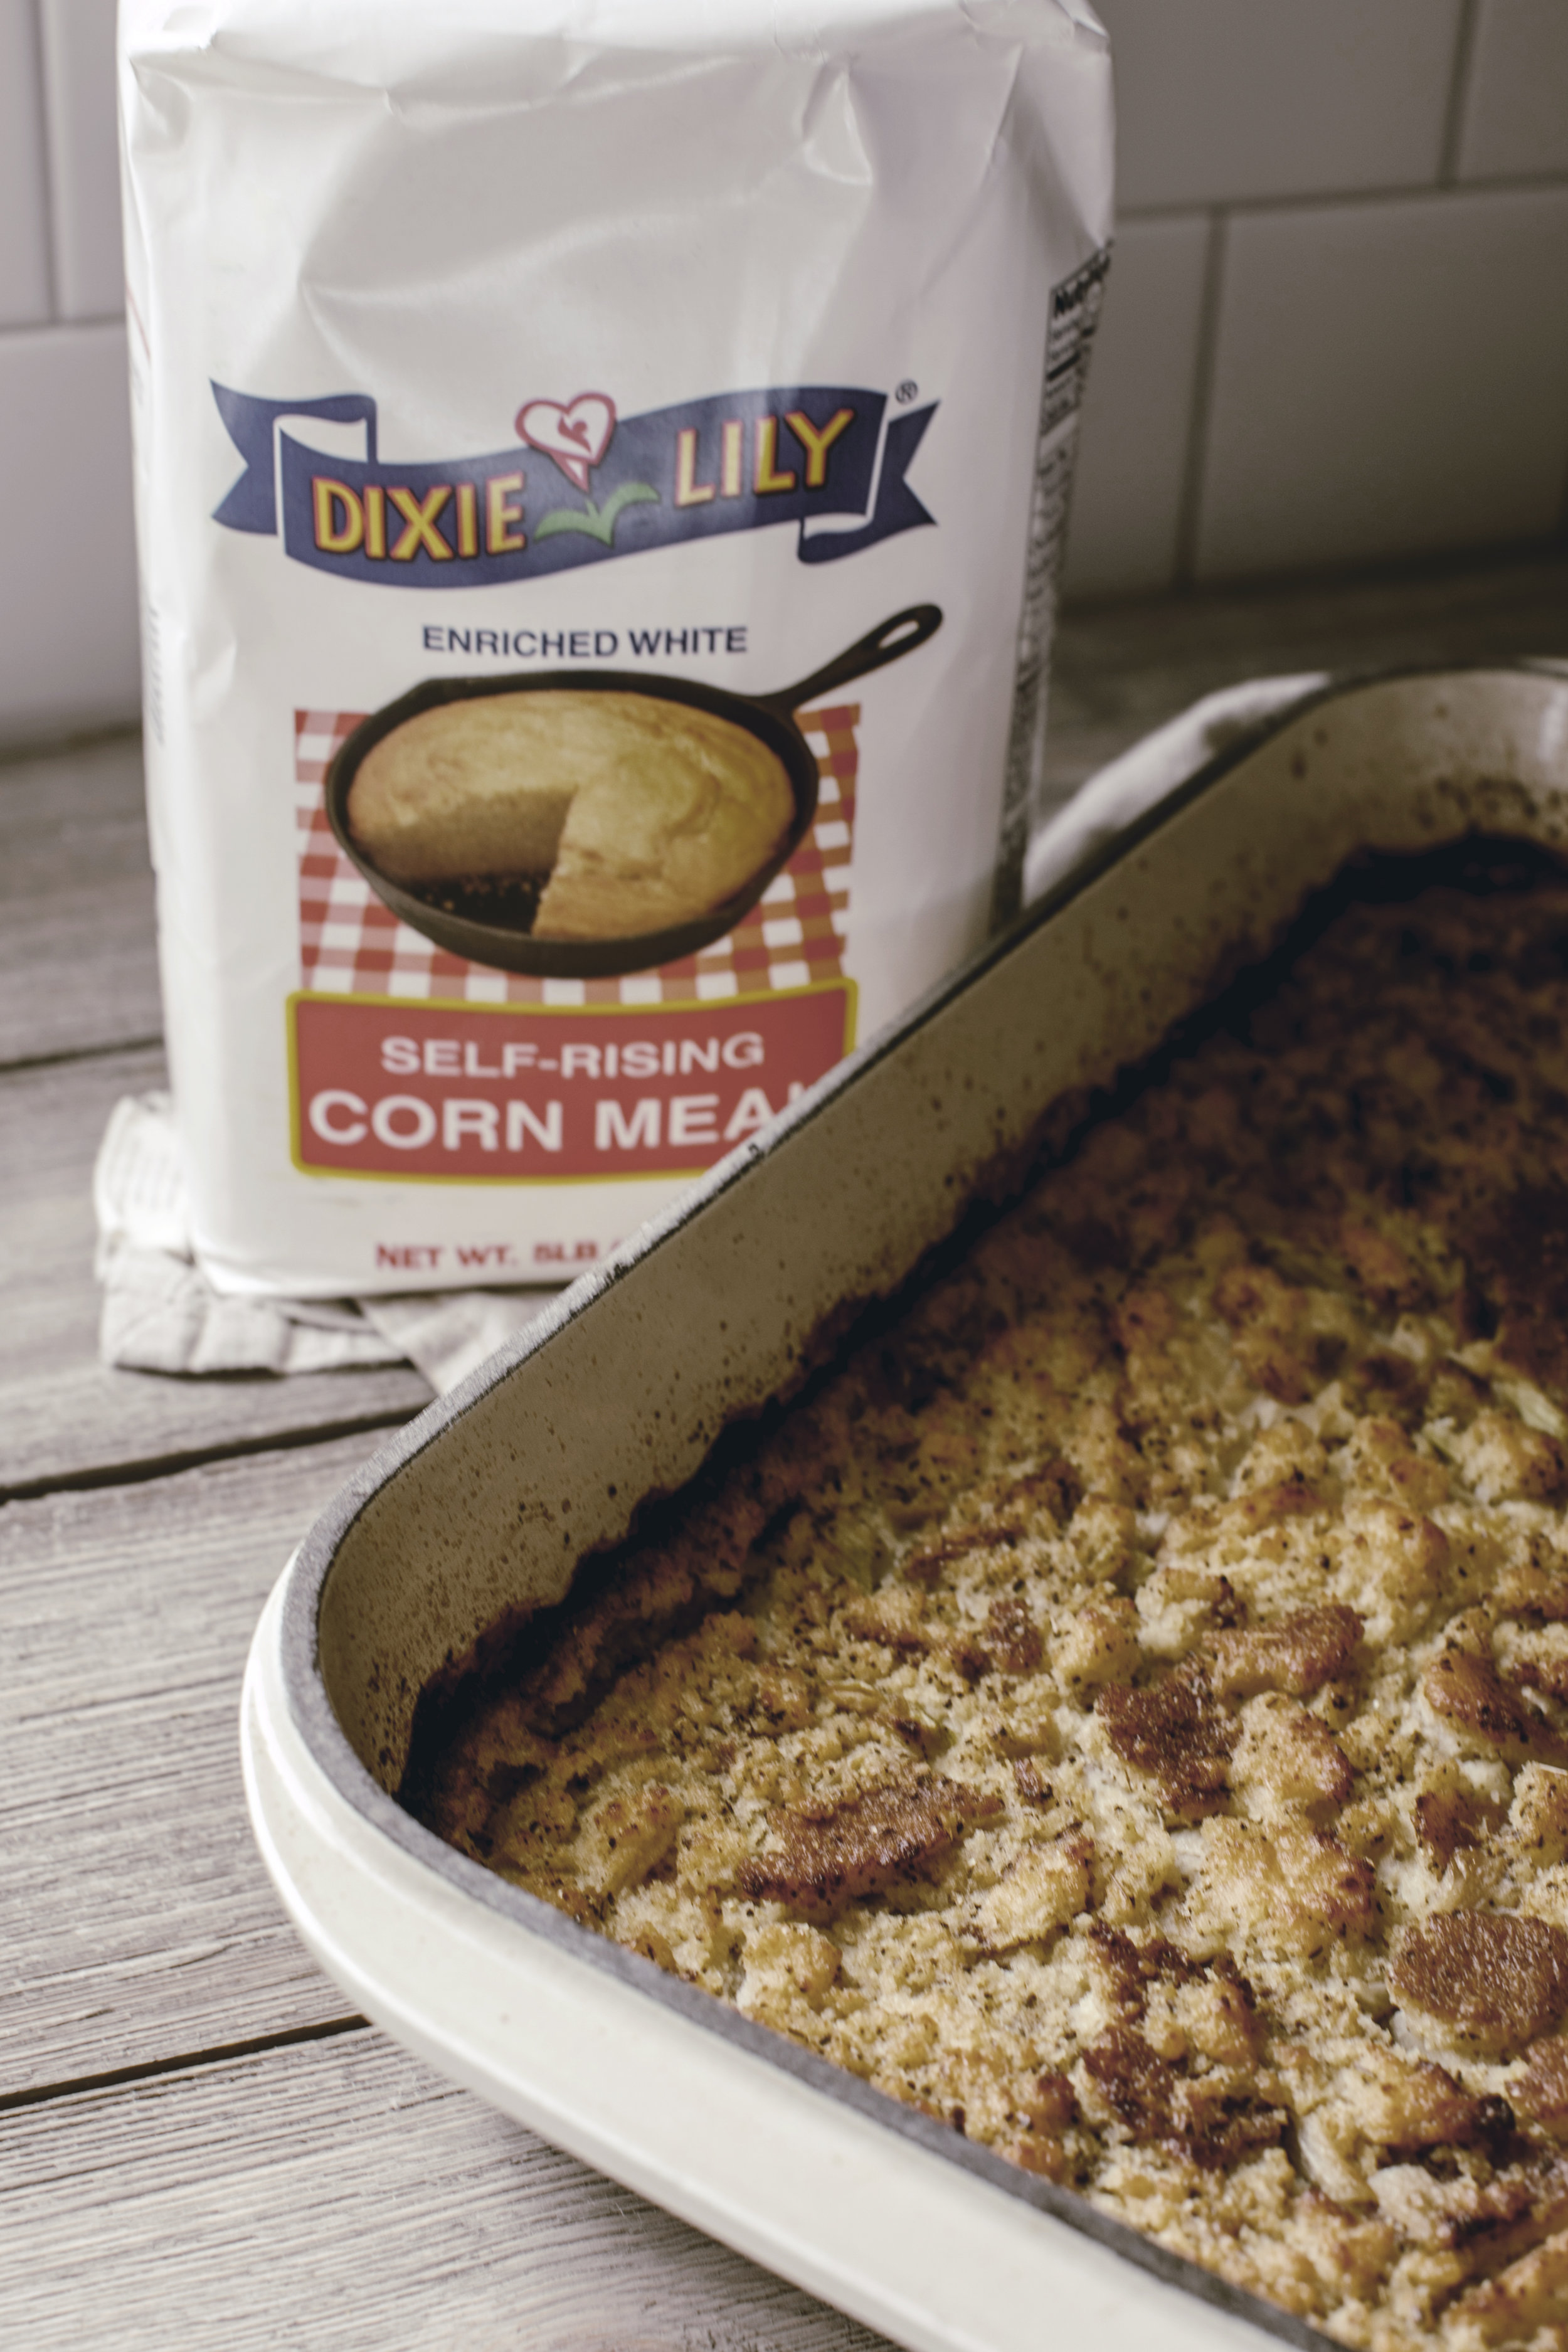 dixie lily cornbread dressing heirloomed